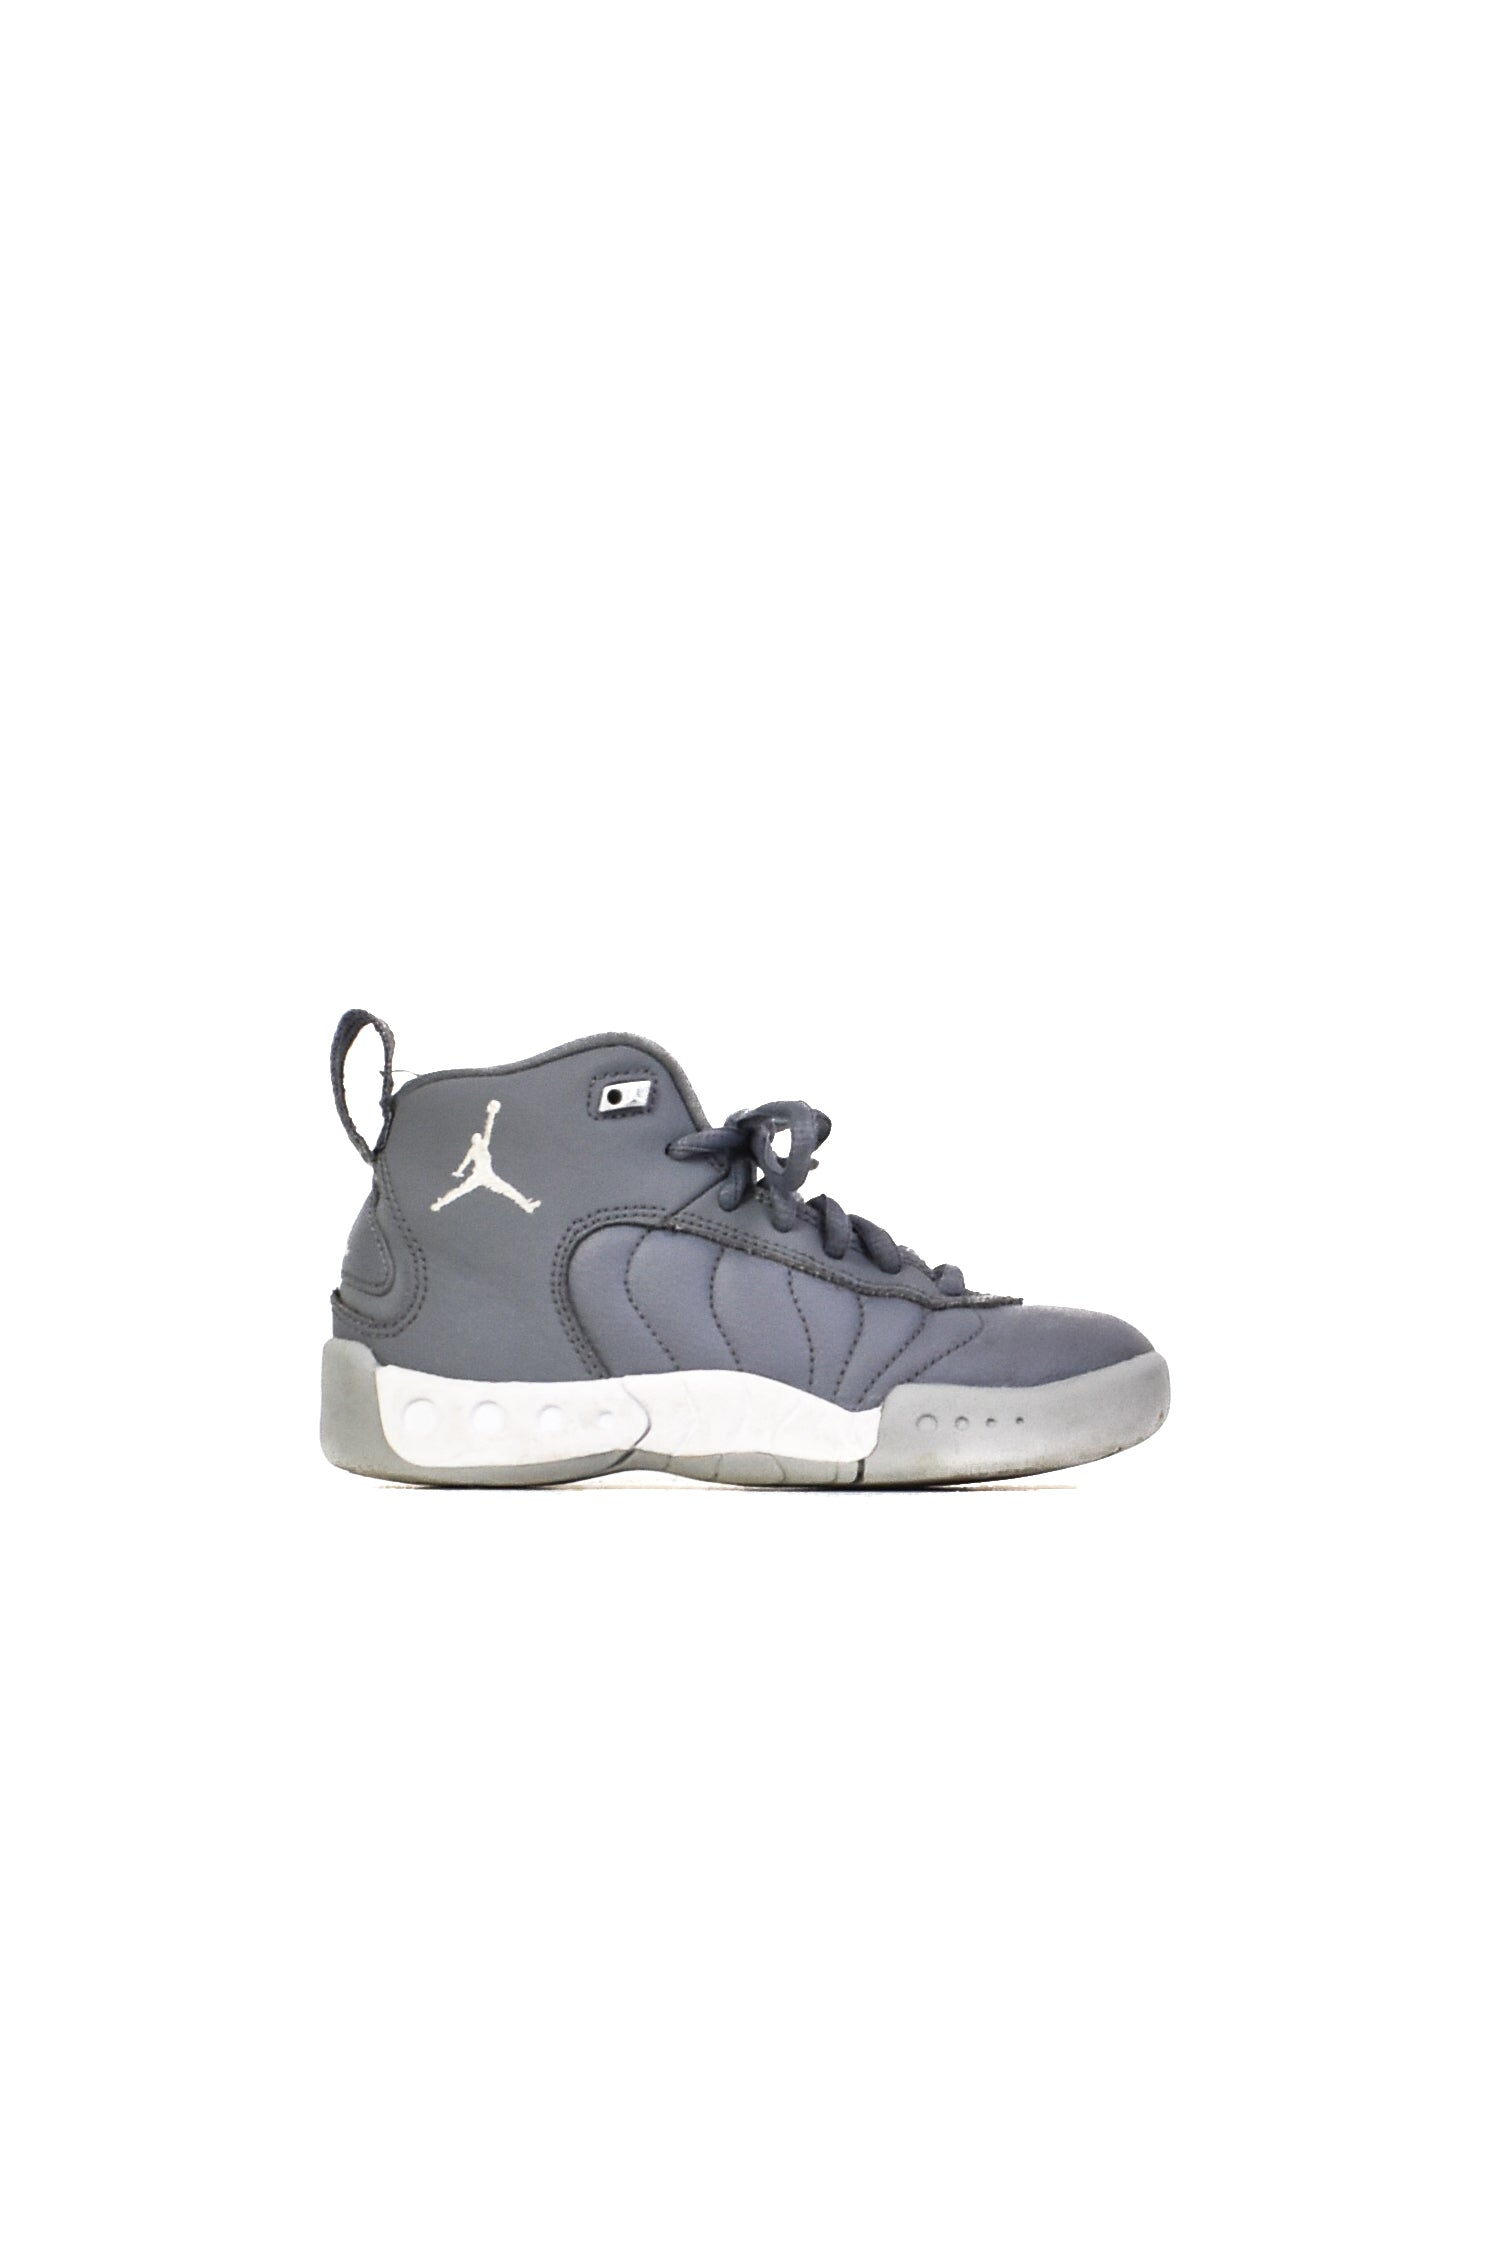 10013175 Nike Kids ~ Shoes 5T (US 11) at Retykle